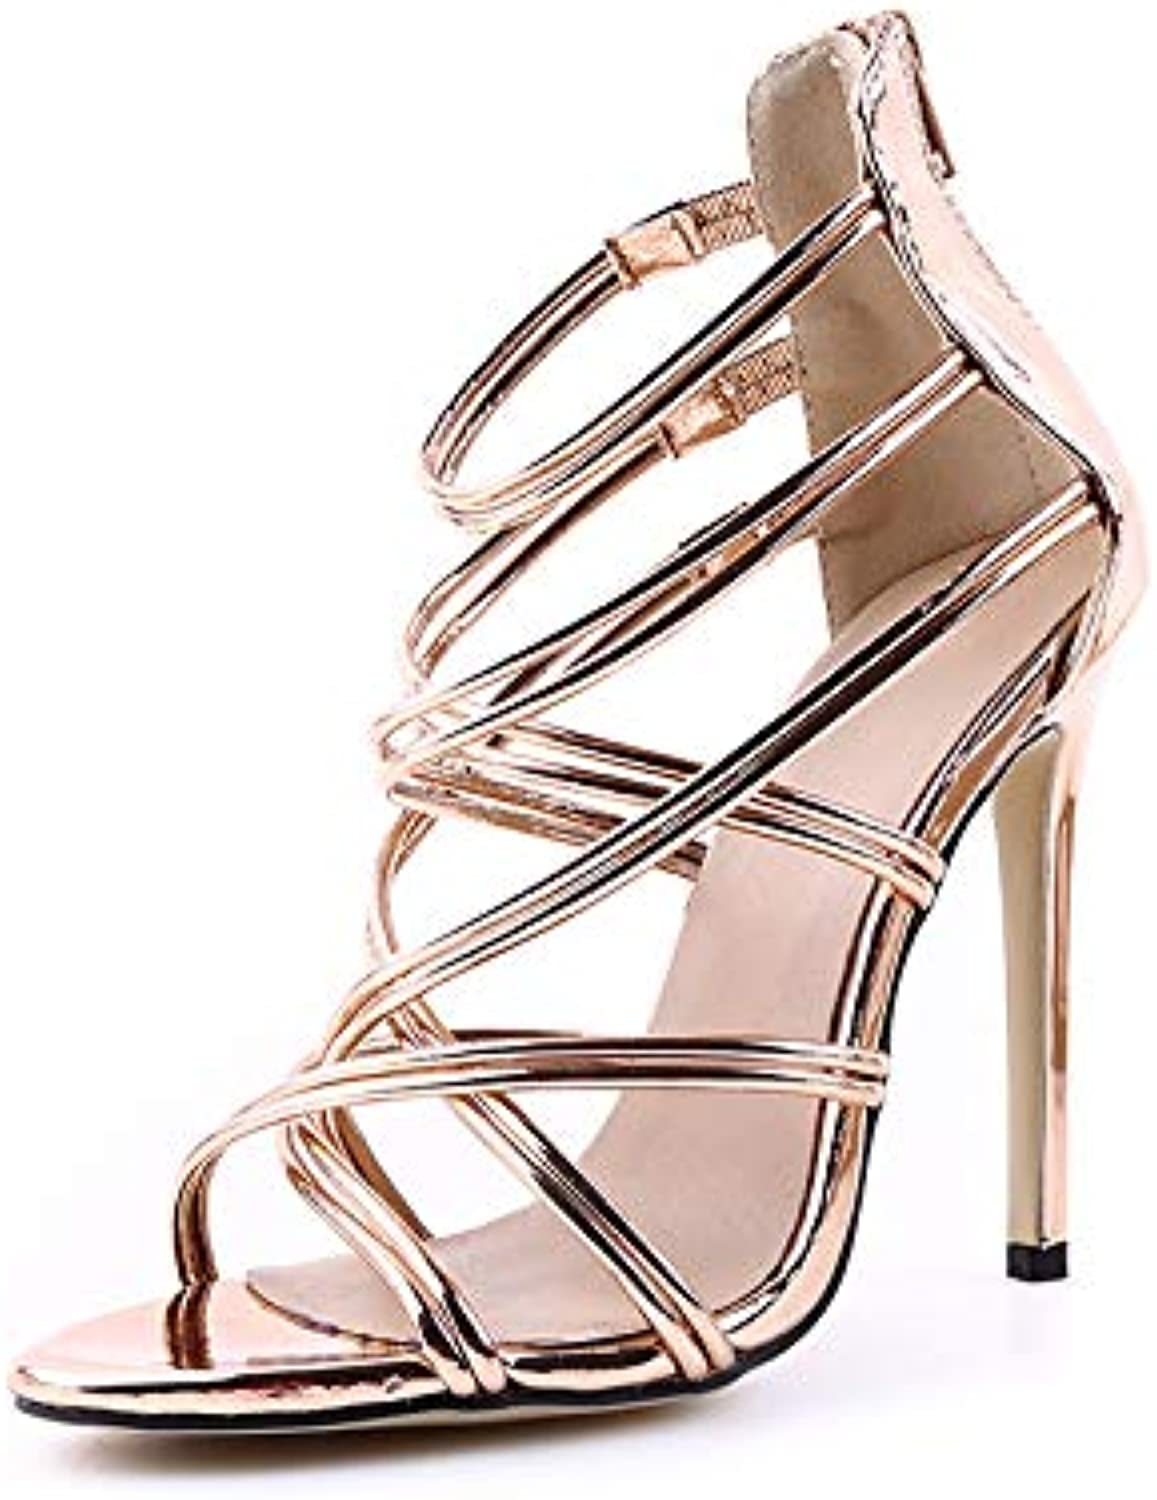 Duduxiaomaibu Women's Sexy Peep Toe Sandals - Patent Leather Cross Strap Solid color - Stiletto High Heels shoes with Zipper